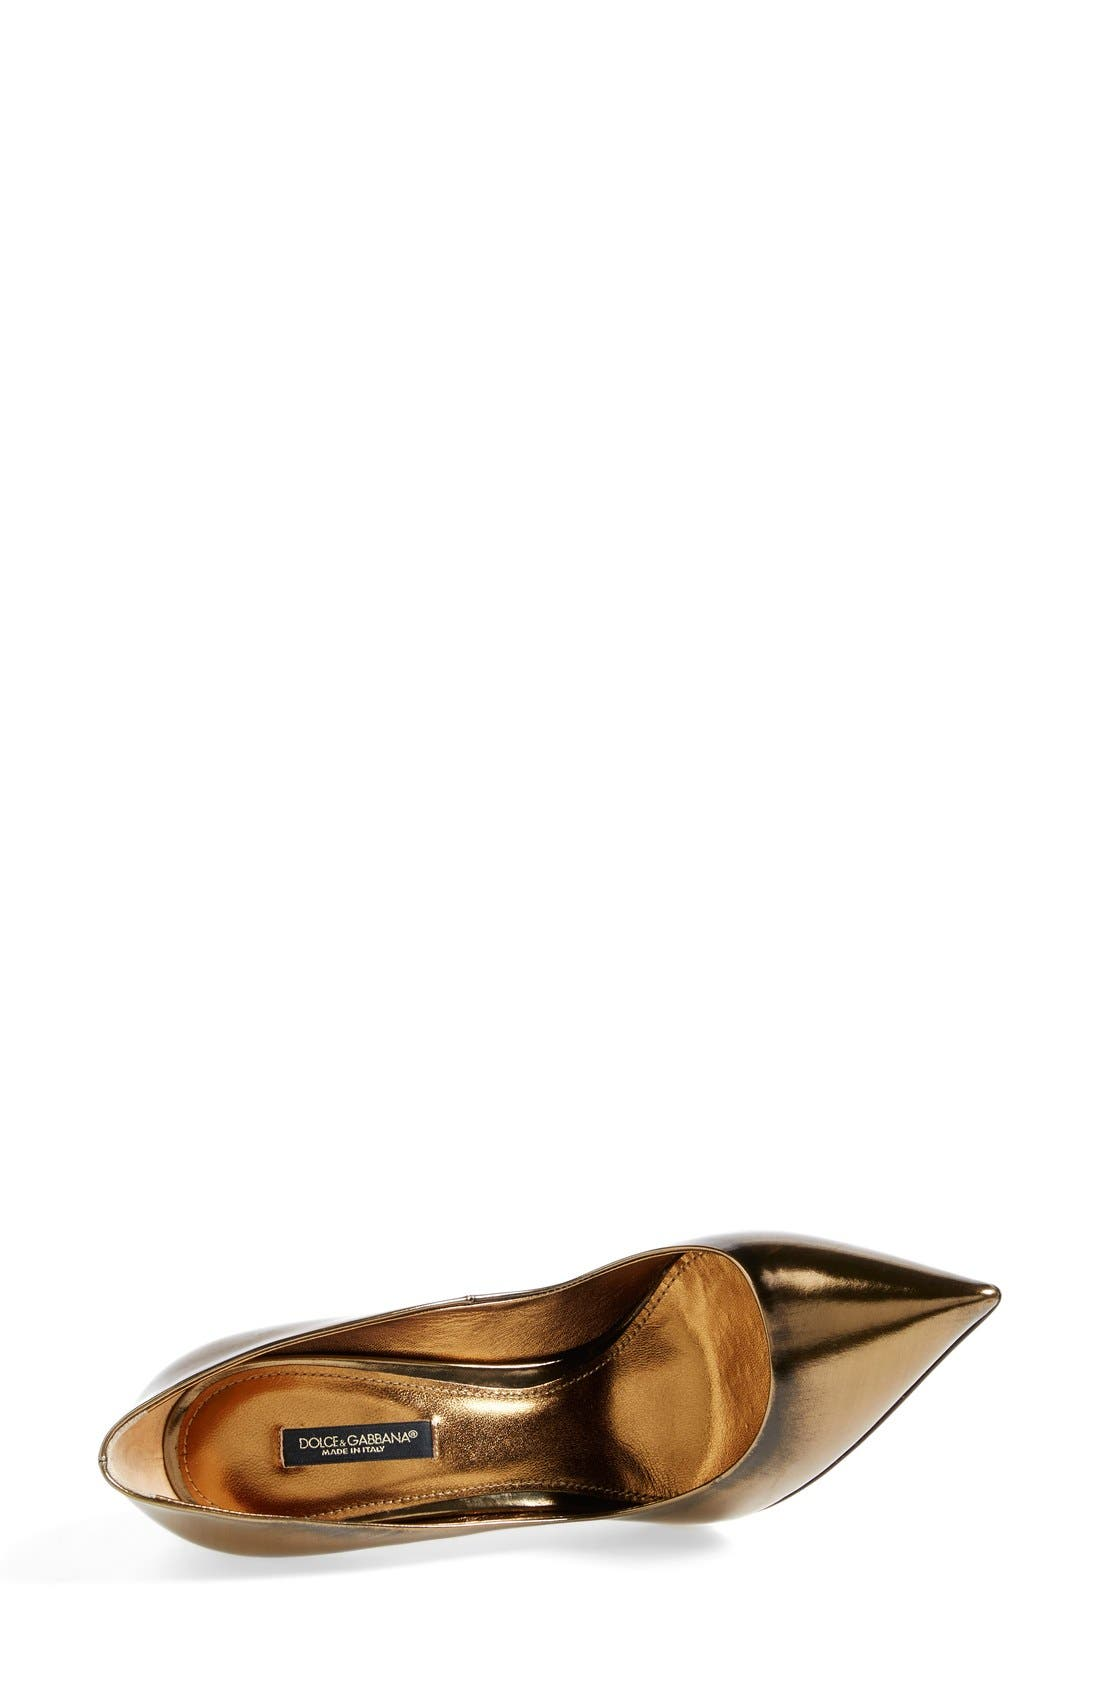 Alternate Image 4  - Dolce&Gabbana Studded Heel Pump (Women)